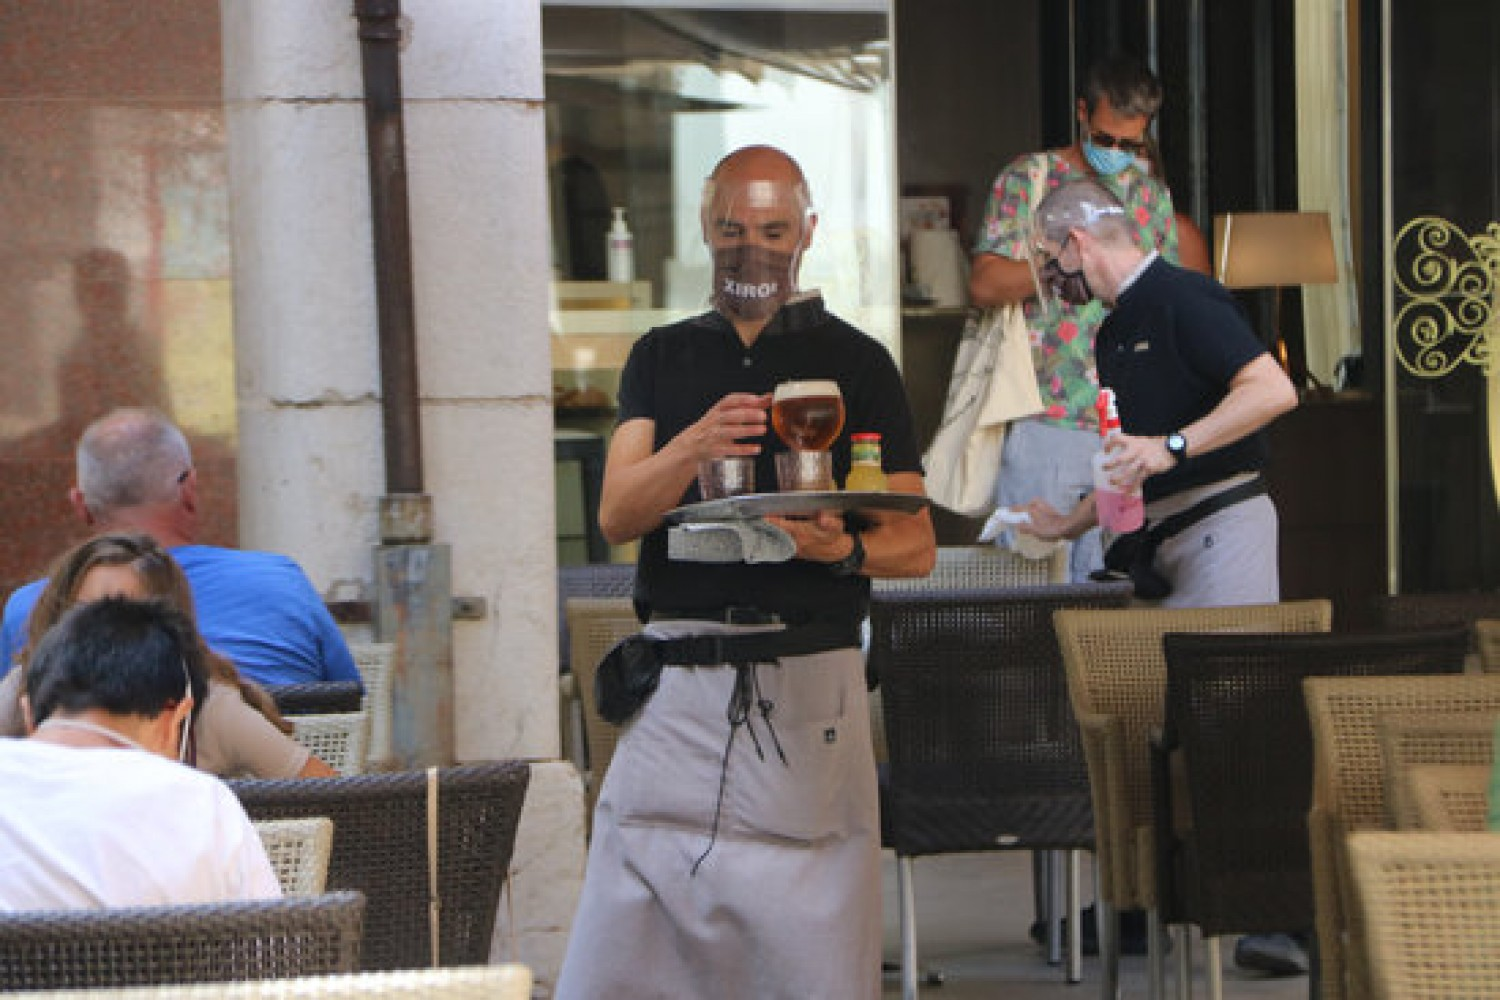 A waiter in Figueres carrying drinks (by Gemma Tubert)